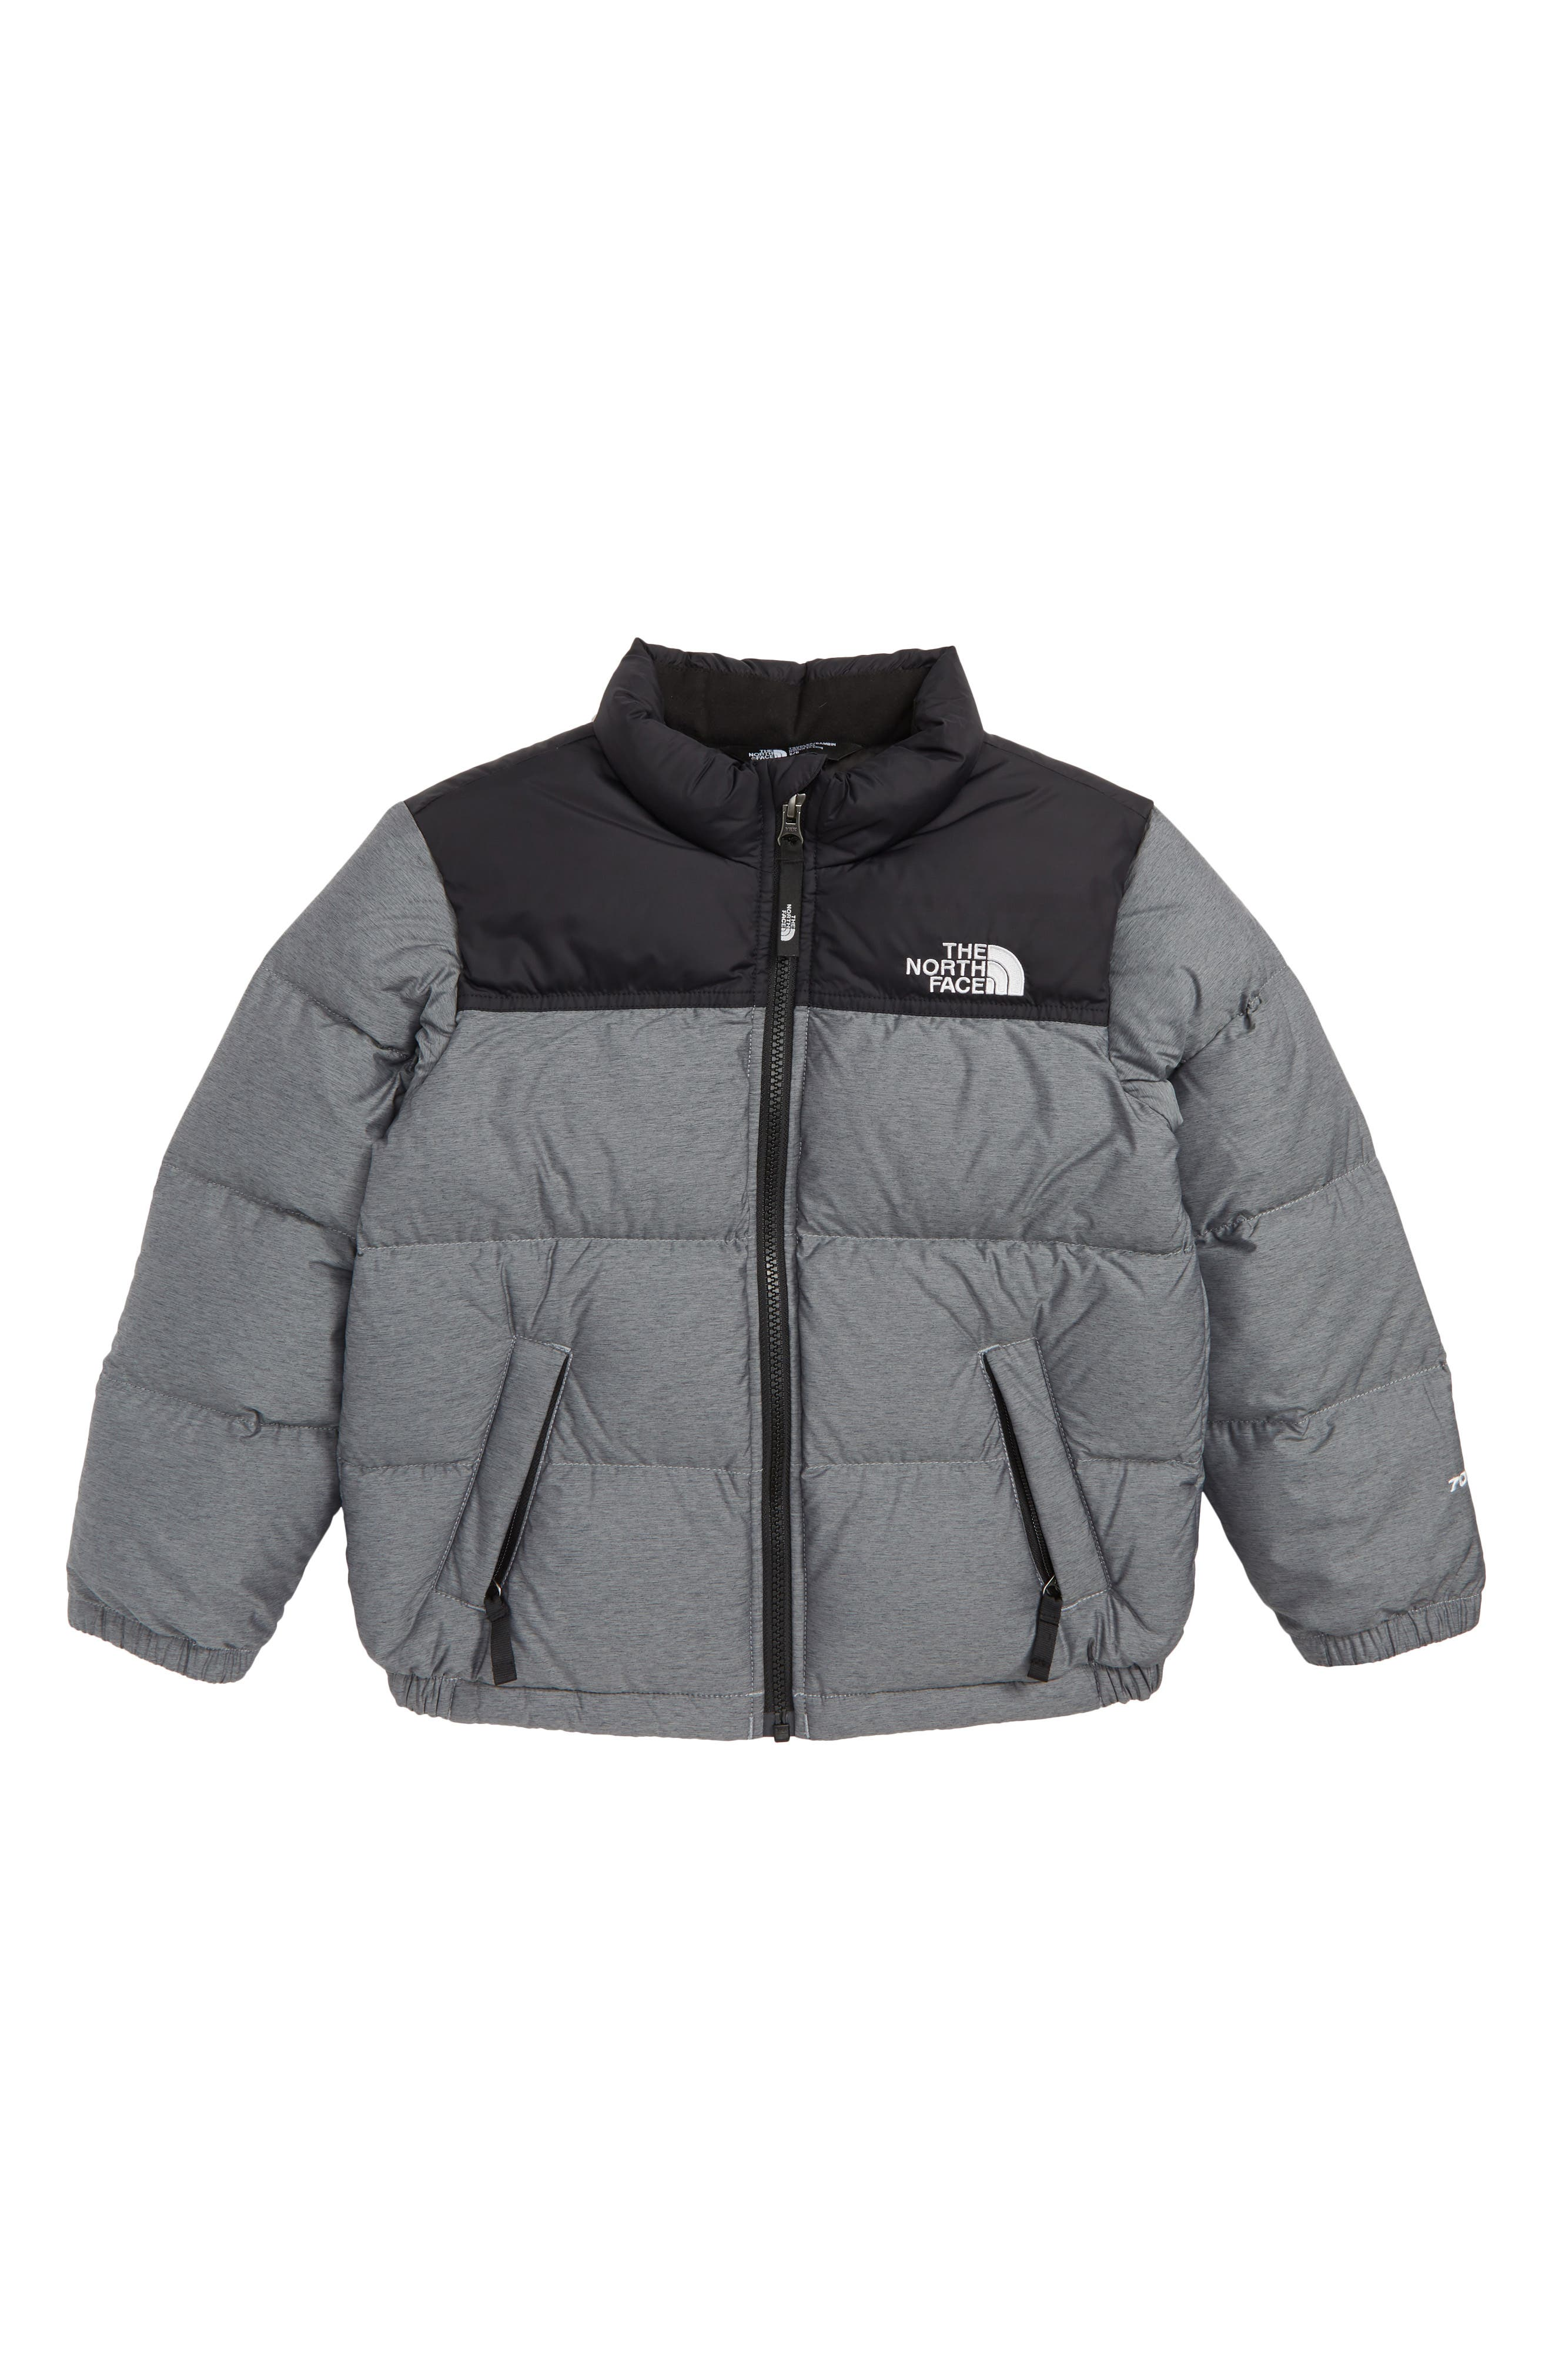 THE NORTH FACE Nuptse 700 Fill Power Down Jacket, Main, color, HEATHER GREY